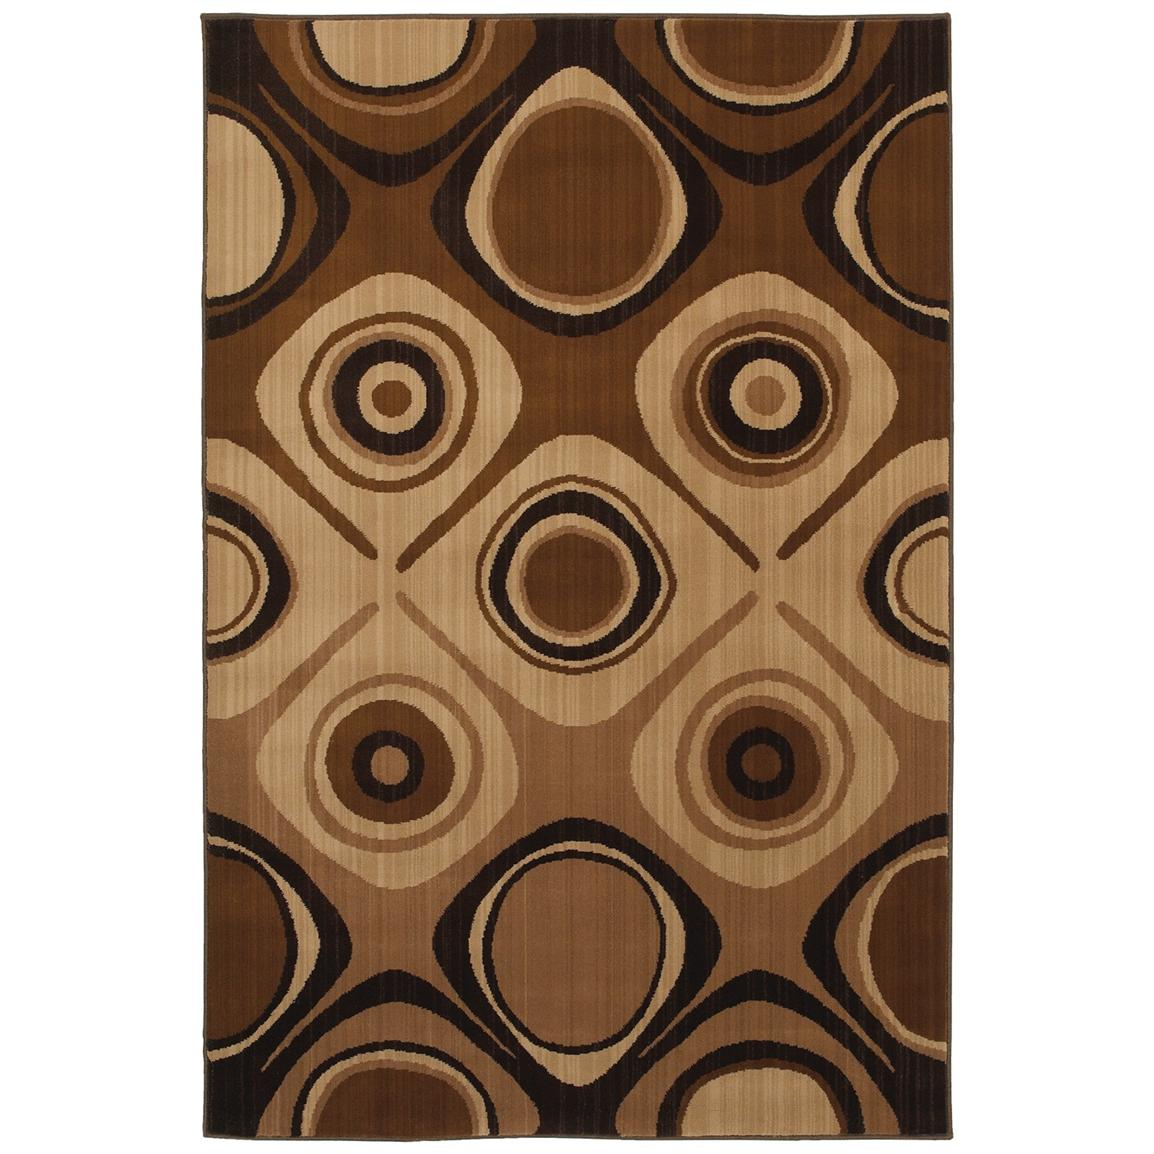 Mohawk® Danger Zone Rug, 5'3 inches x7'10 inches